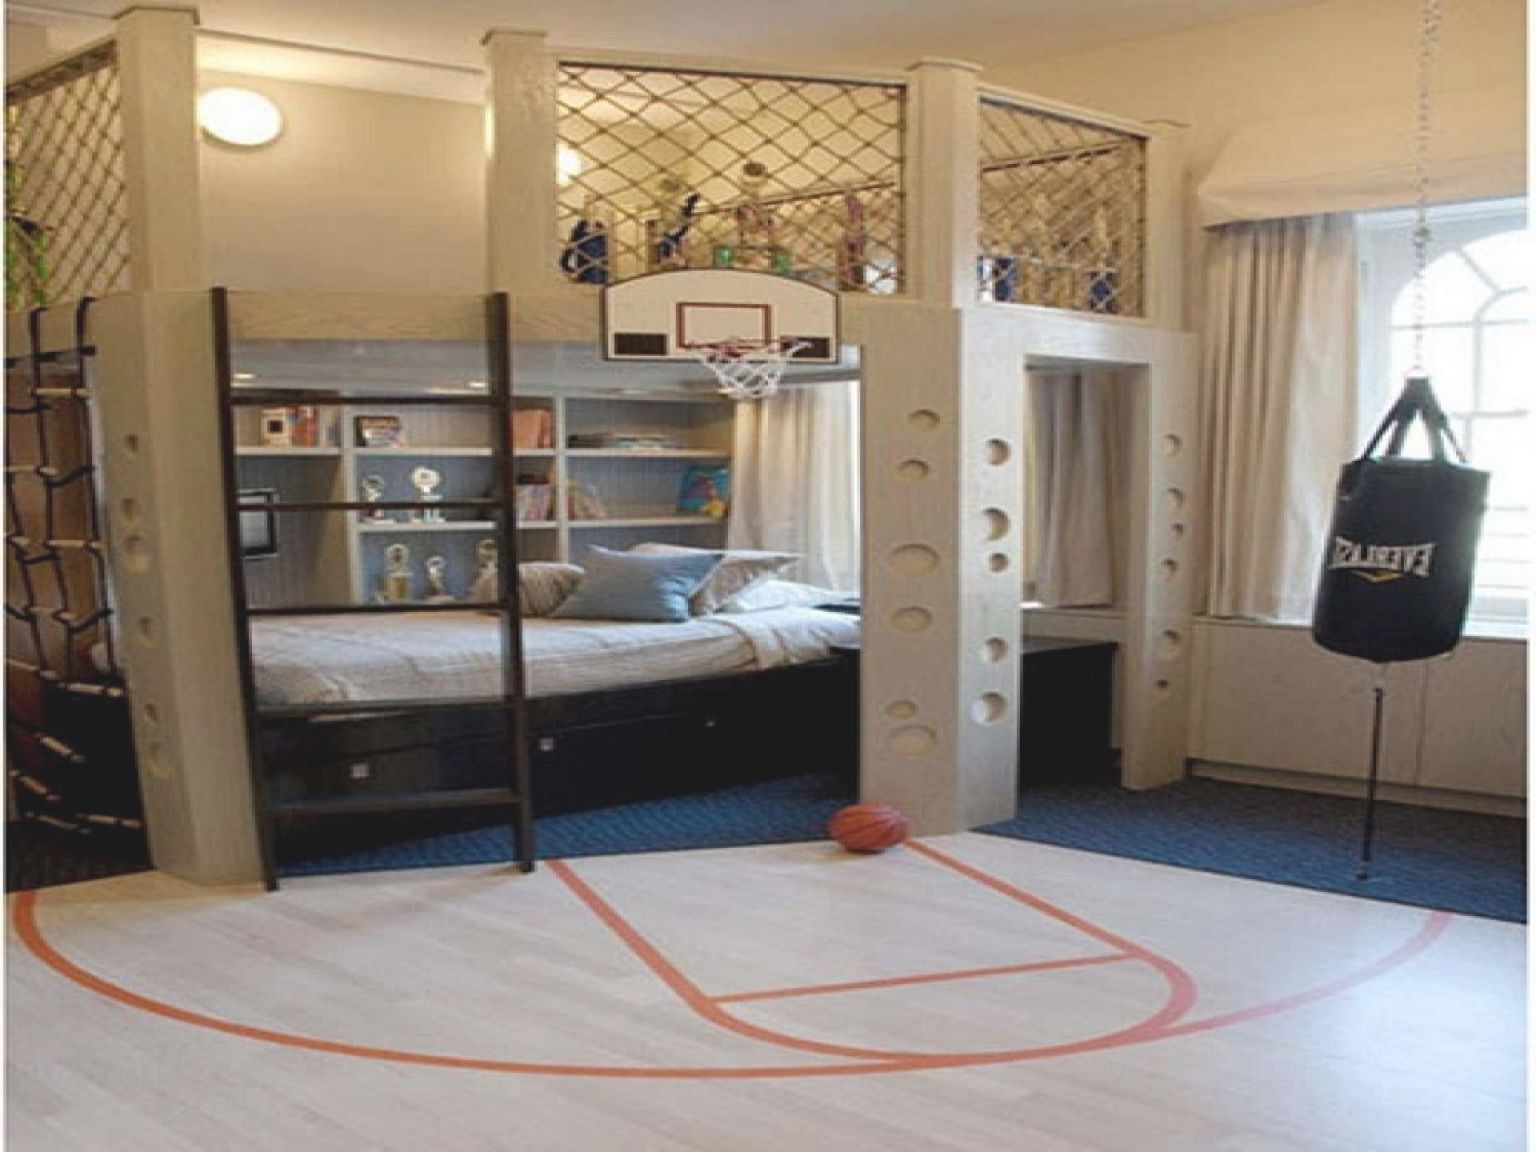 New Basketball Bedroom Design Boy Room Decor Full Size Of throughout Football Bedroom Decorating Ideas